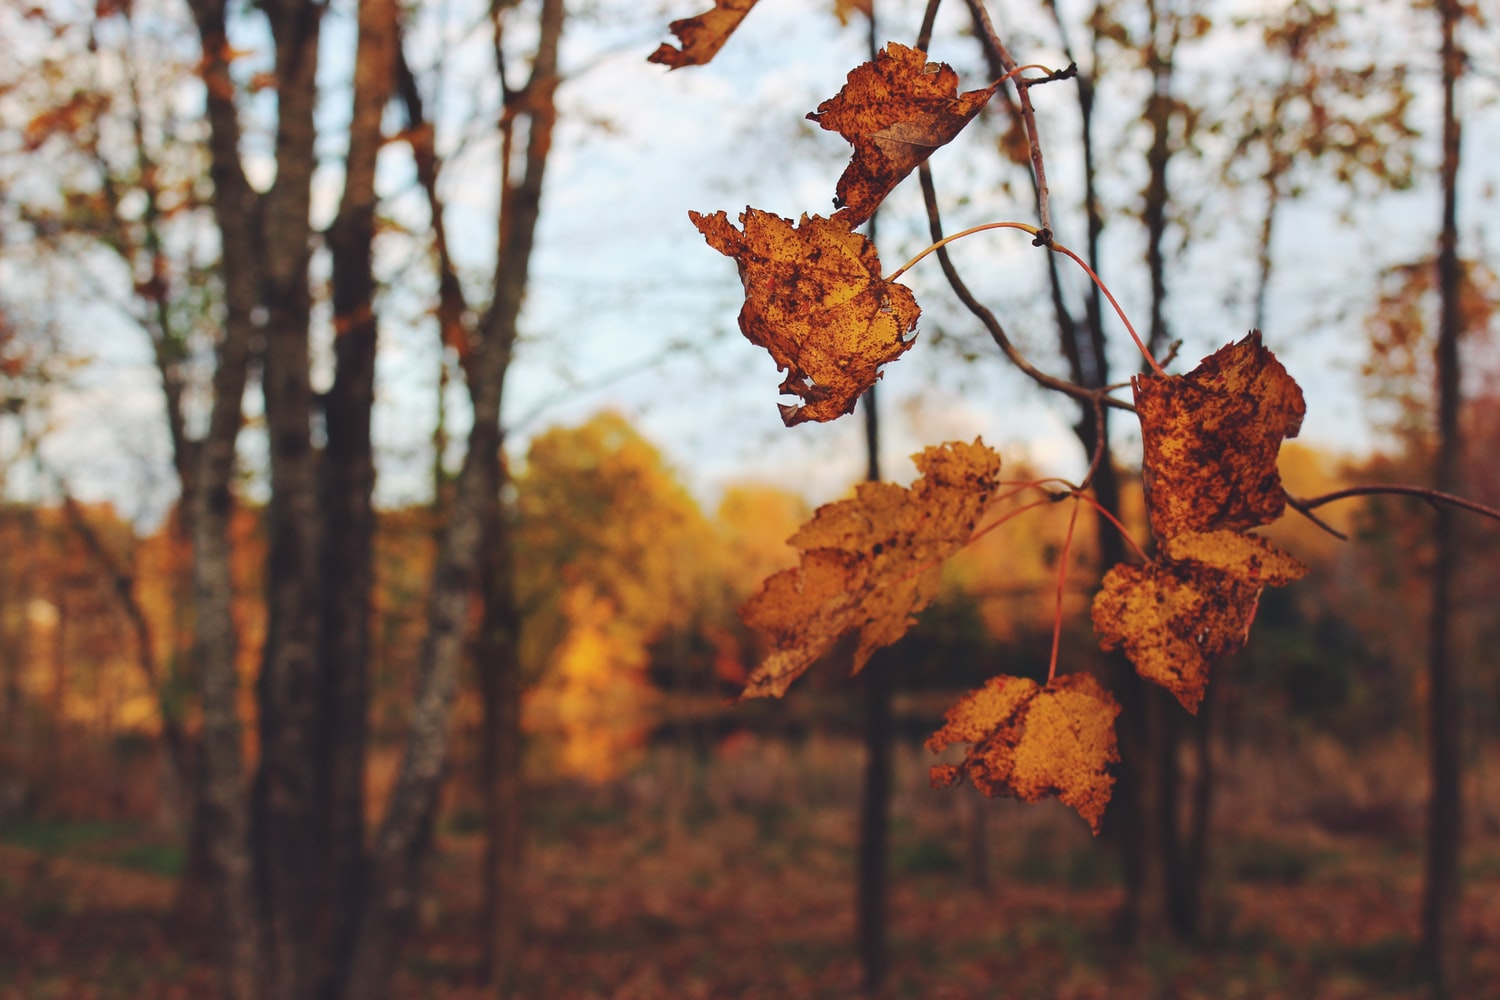 selective focus on leaves outside in forest during fall